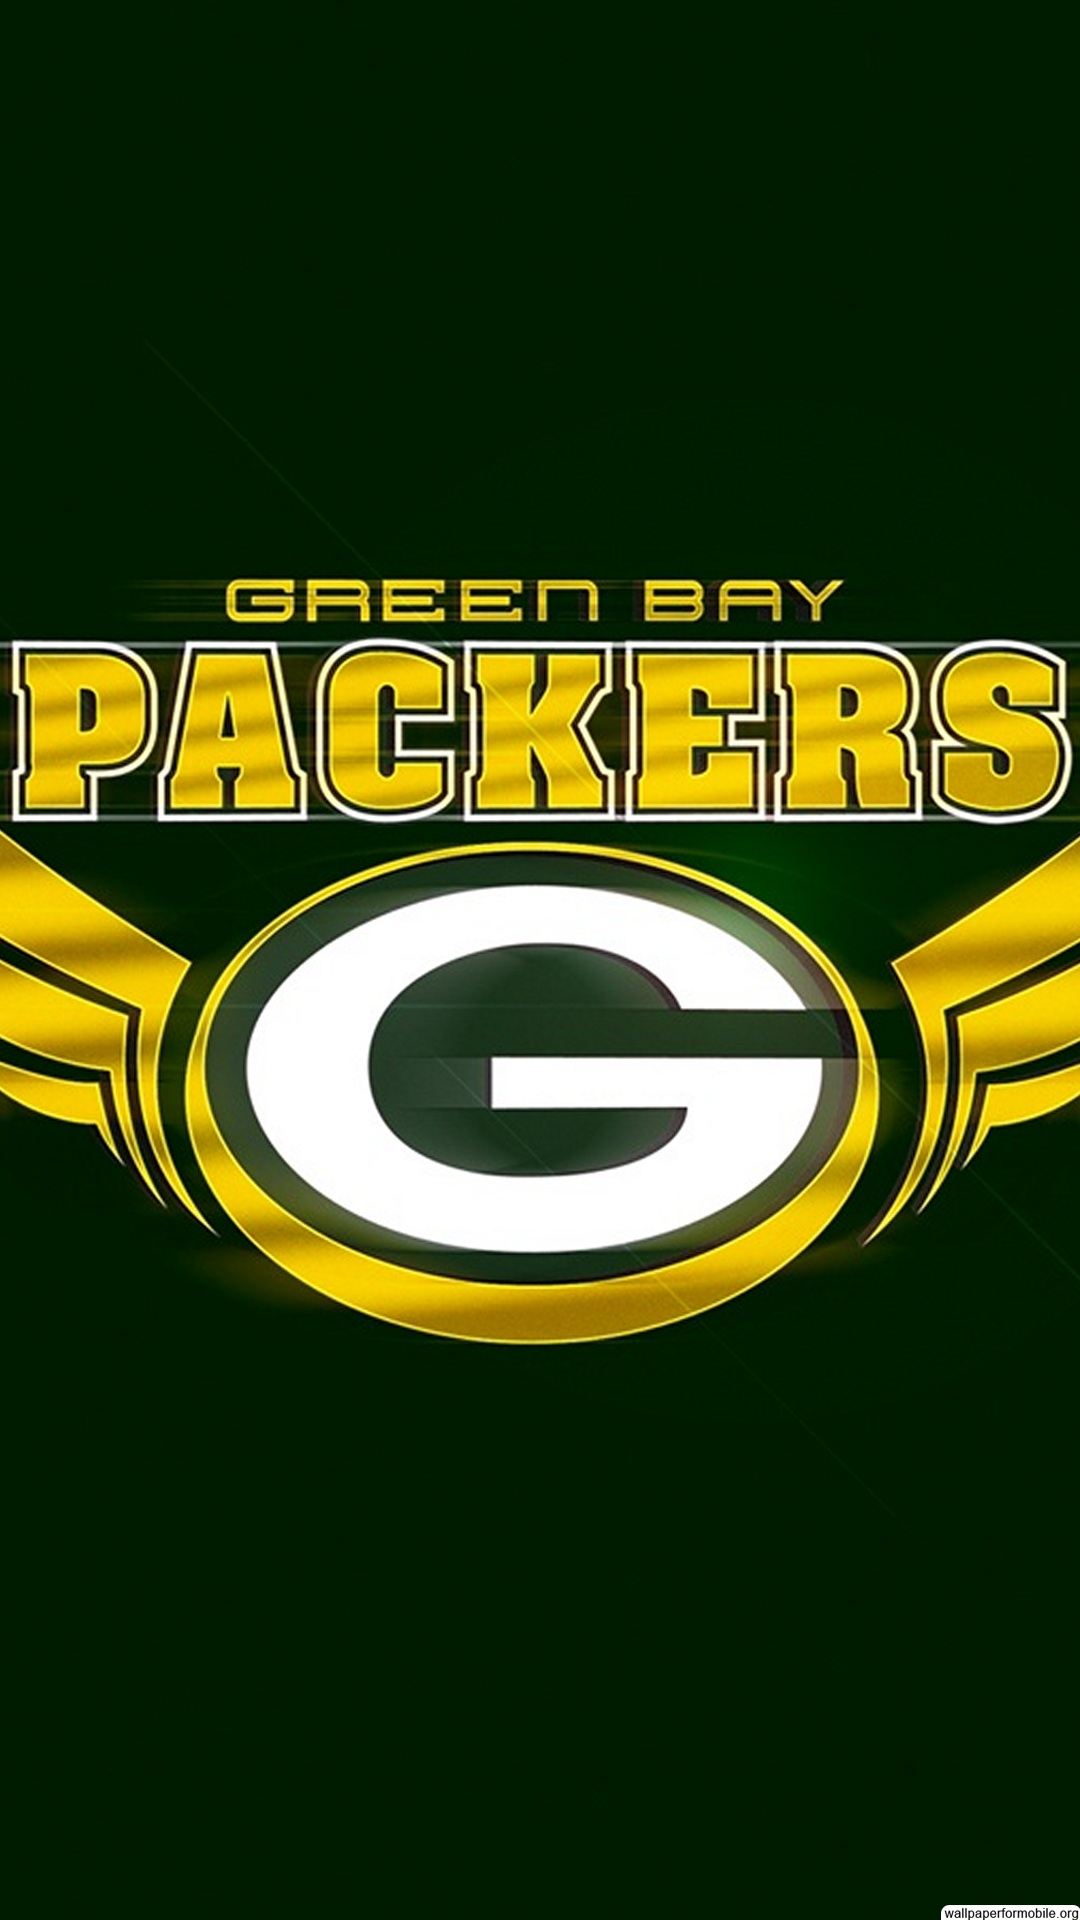 Wallpaper Of Green Bay Packers